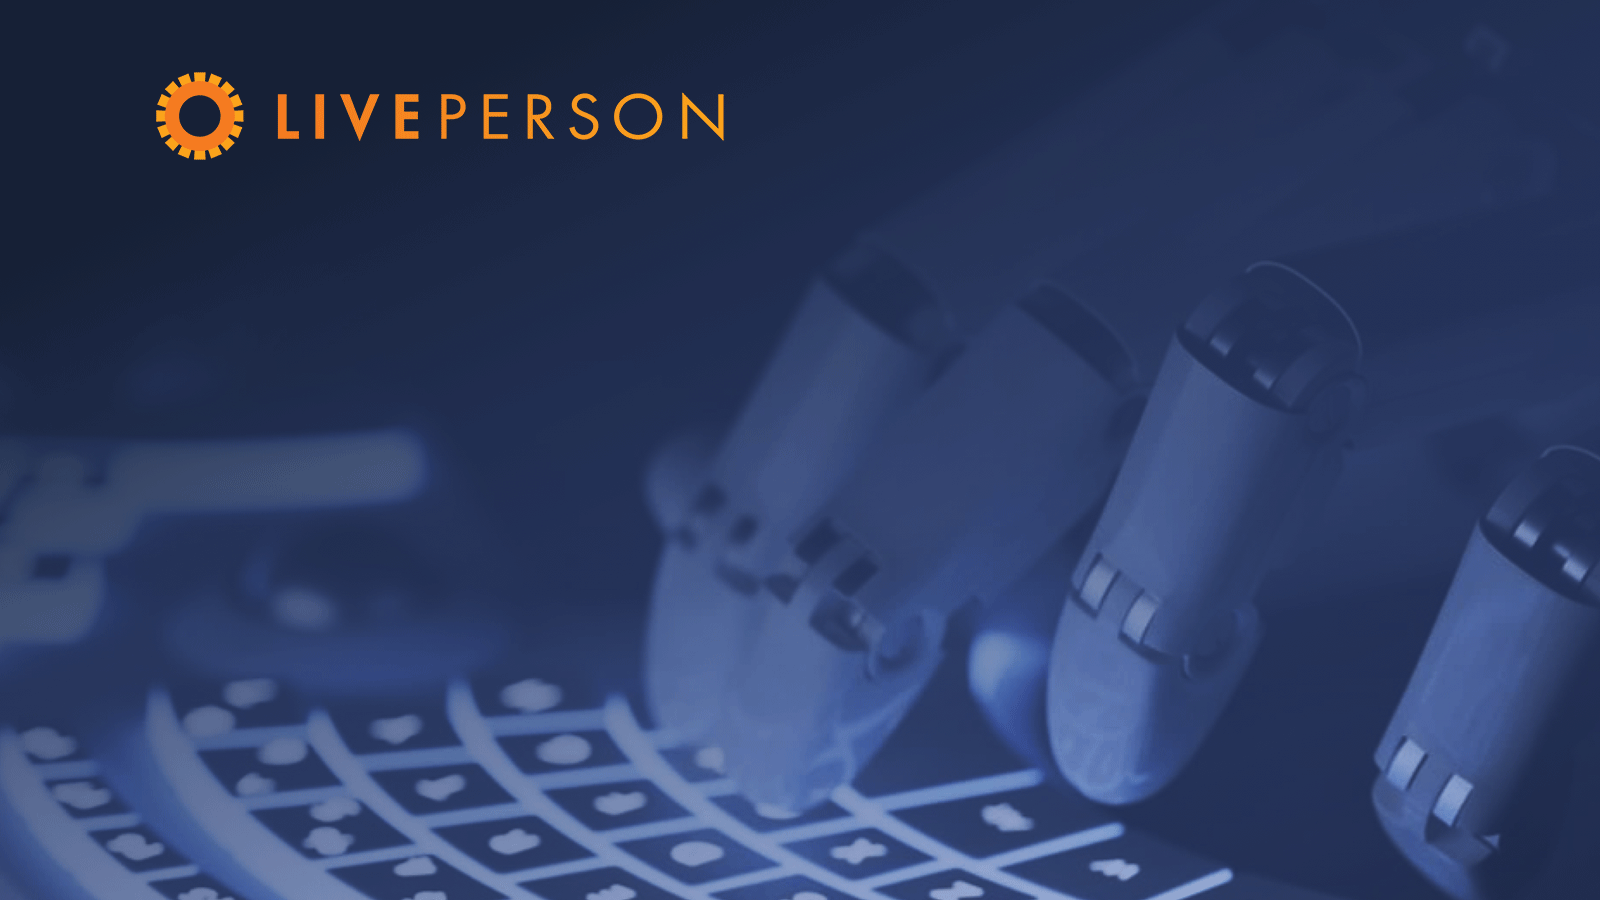 LivePerson Launches the World's First Enterprise Bot Management Platform